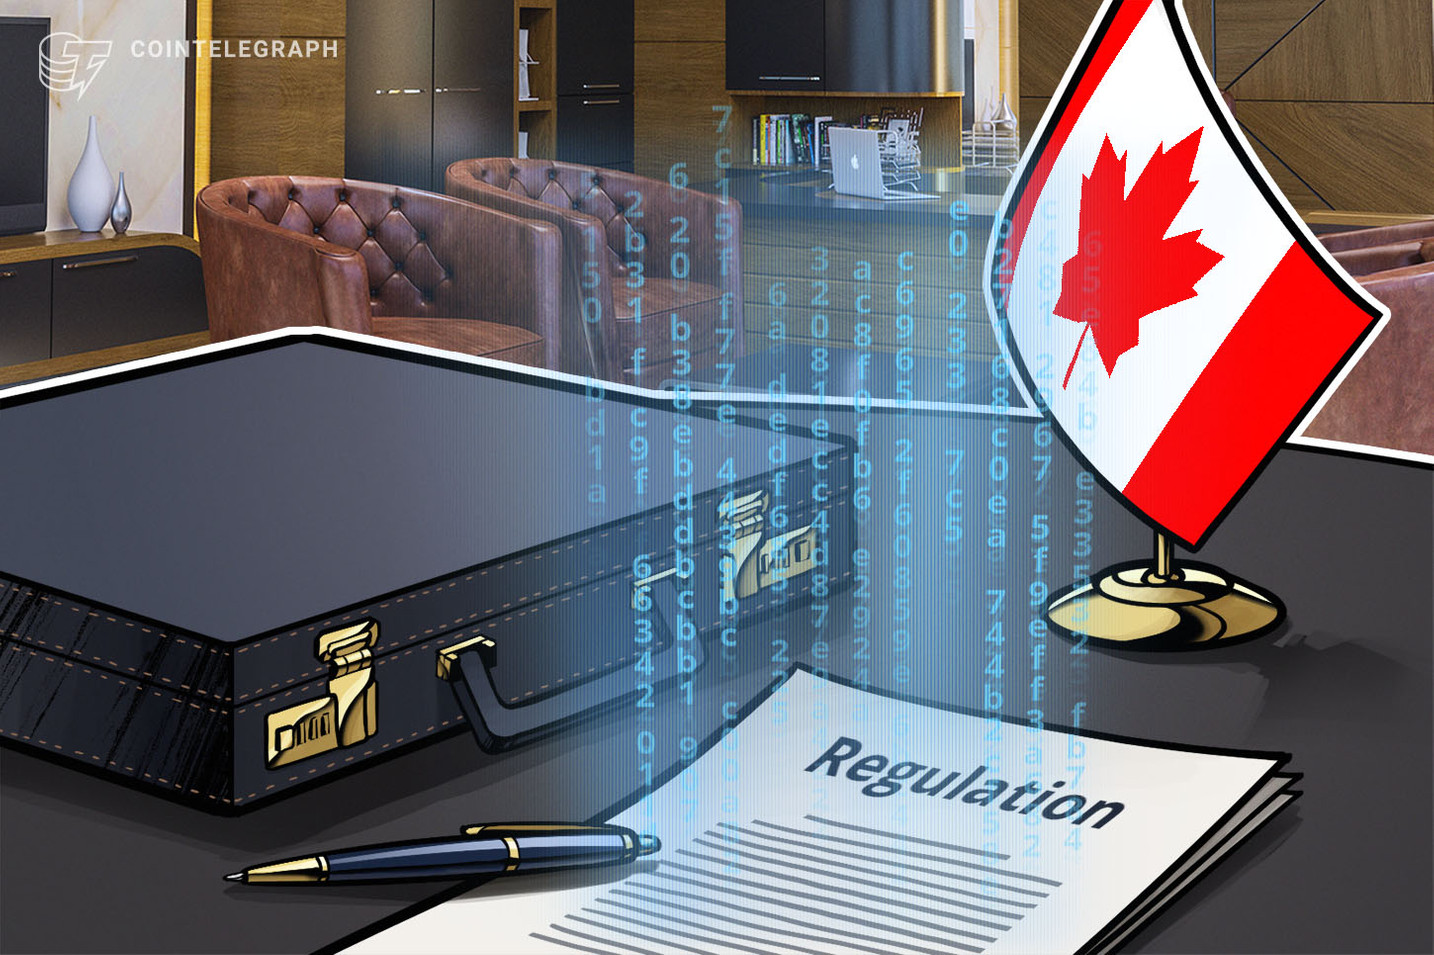 Regulador canadense estabelece novas regras para exchanges de criptomoedas